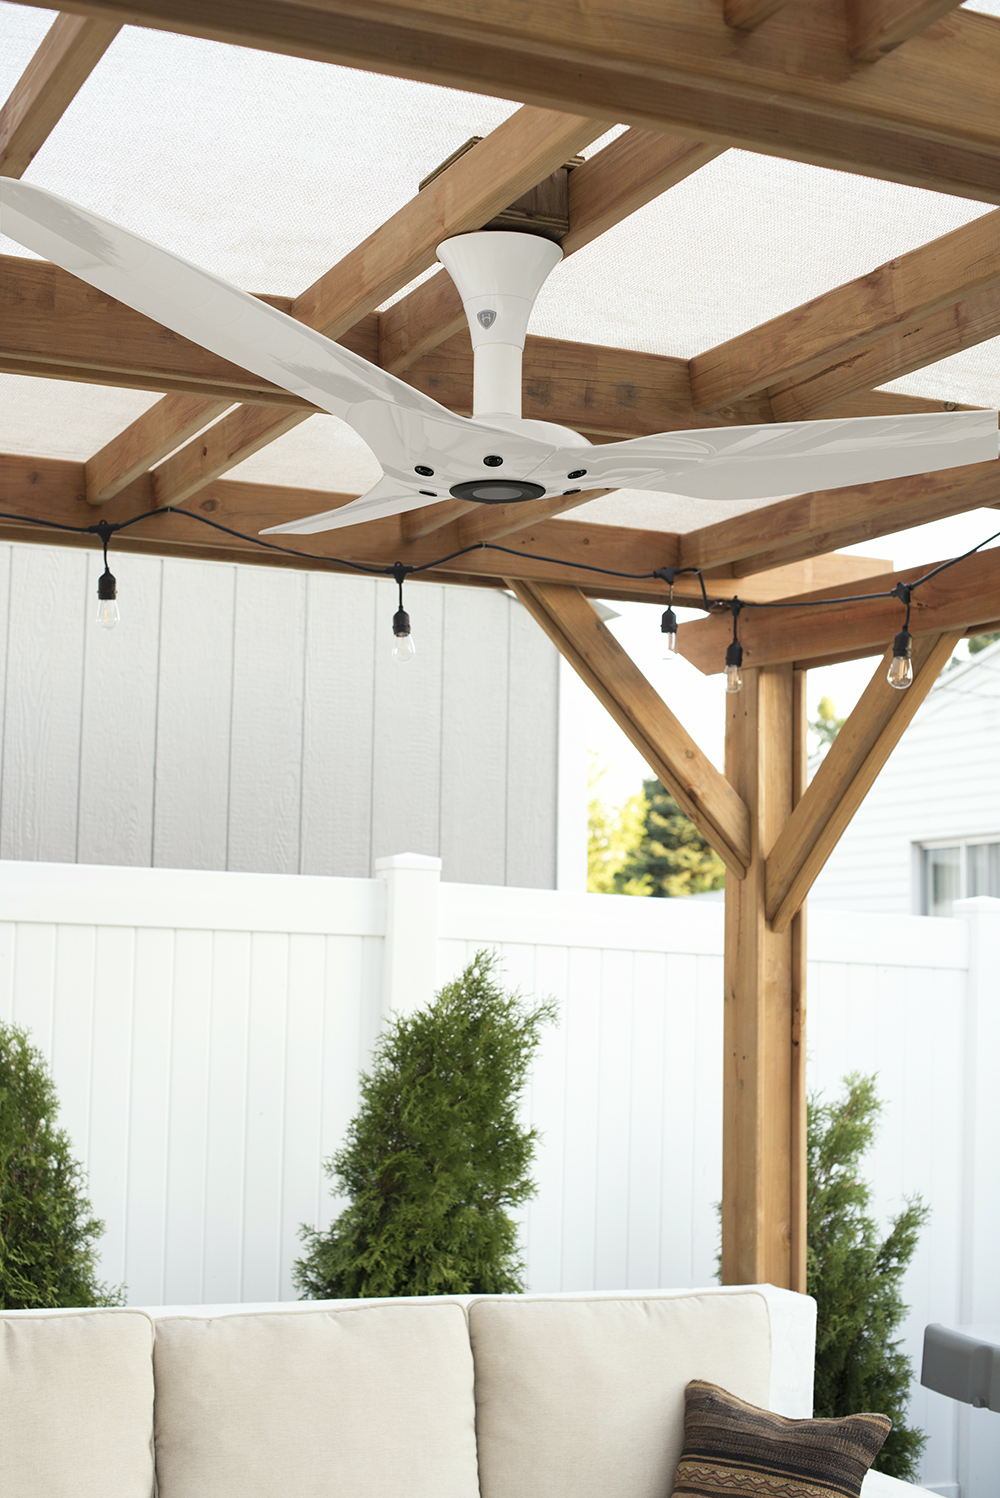 Our Outdoor Fan- roomfortuesday.com